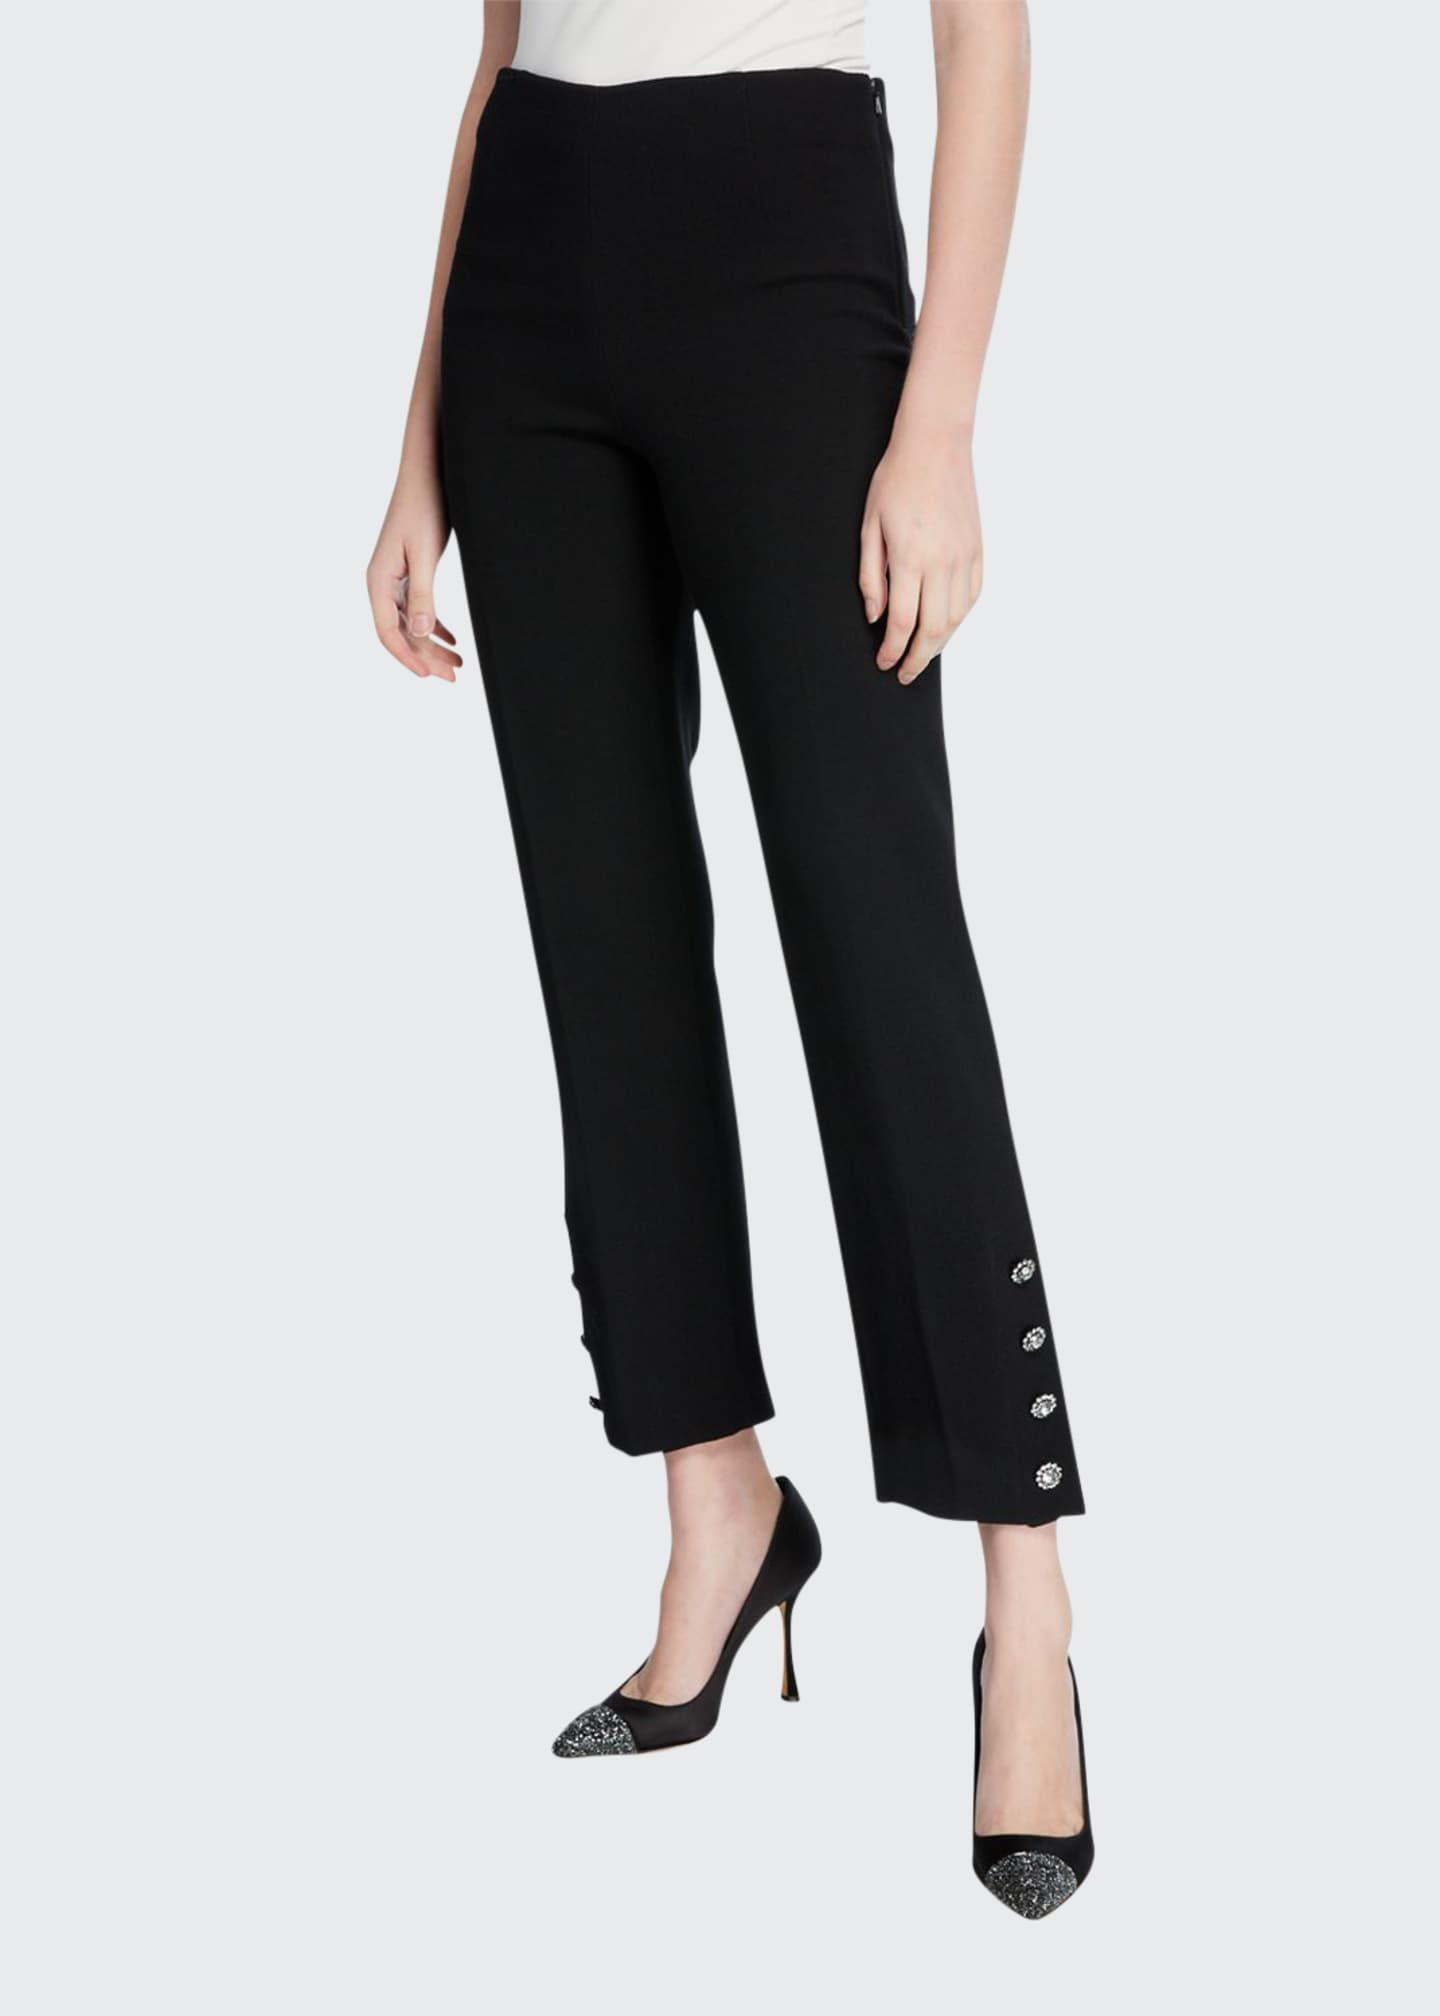 Lela Rose Crepe Crystal Button-Cuff Pants